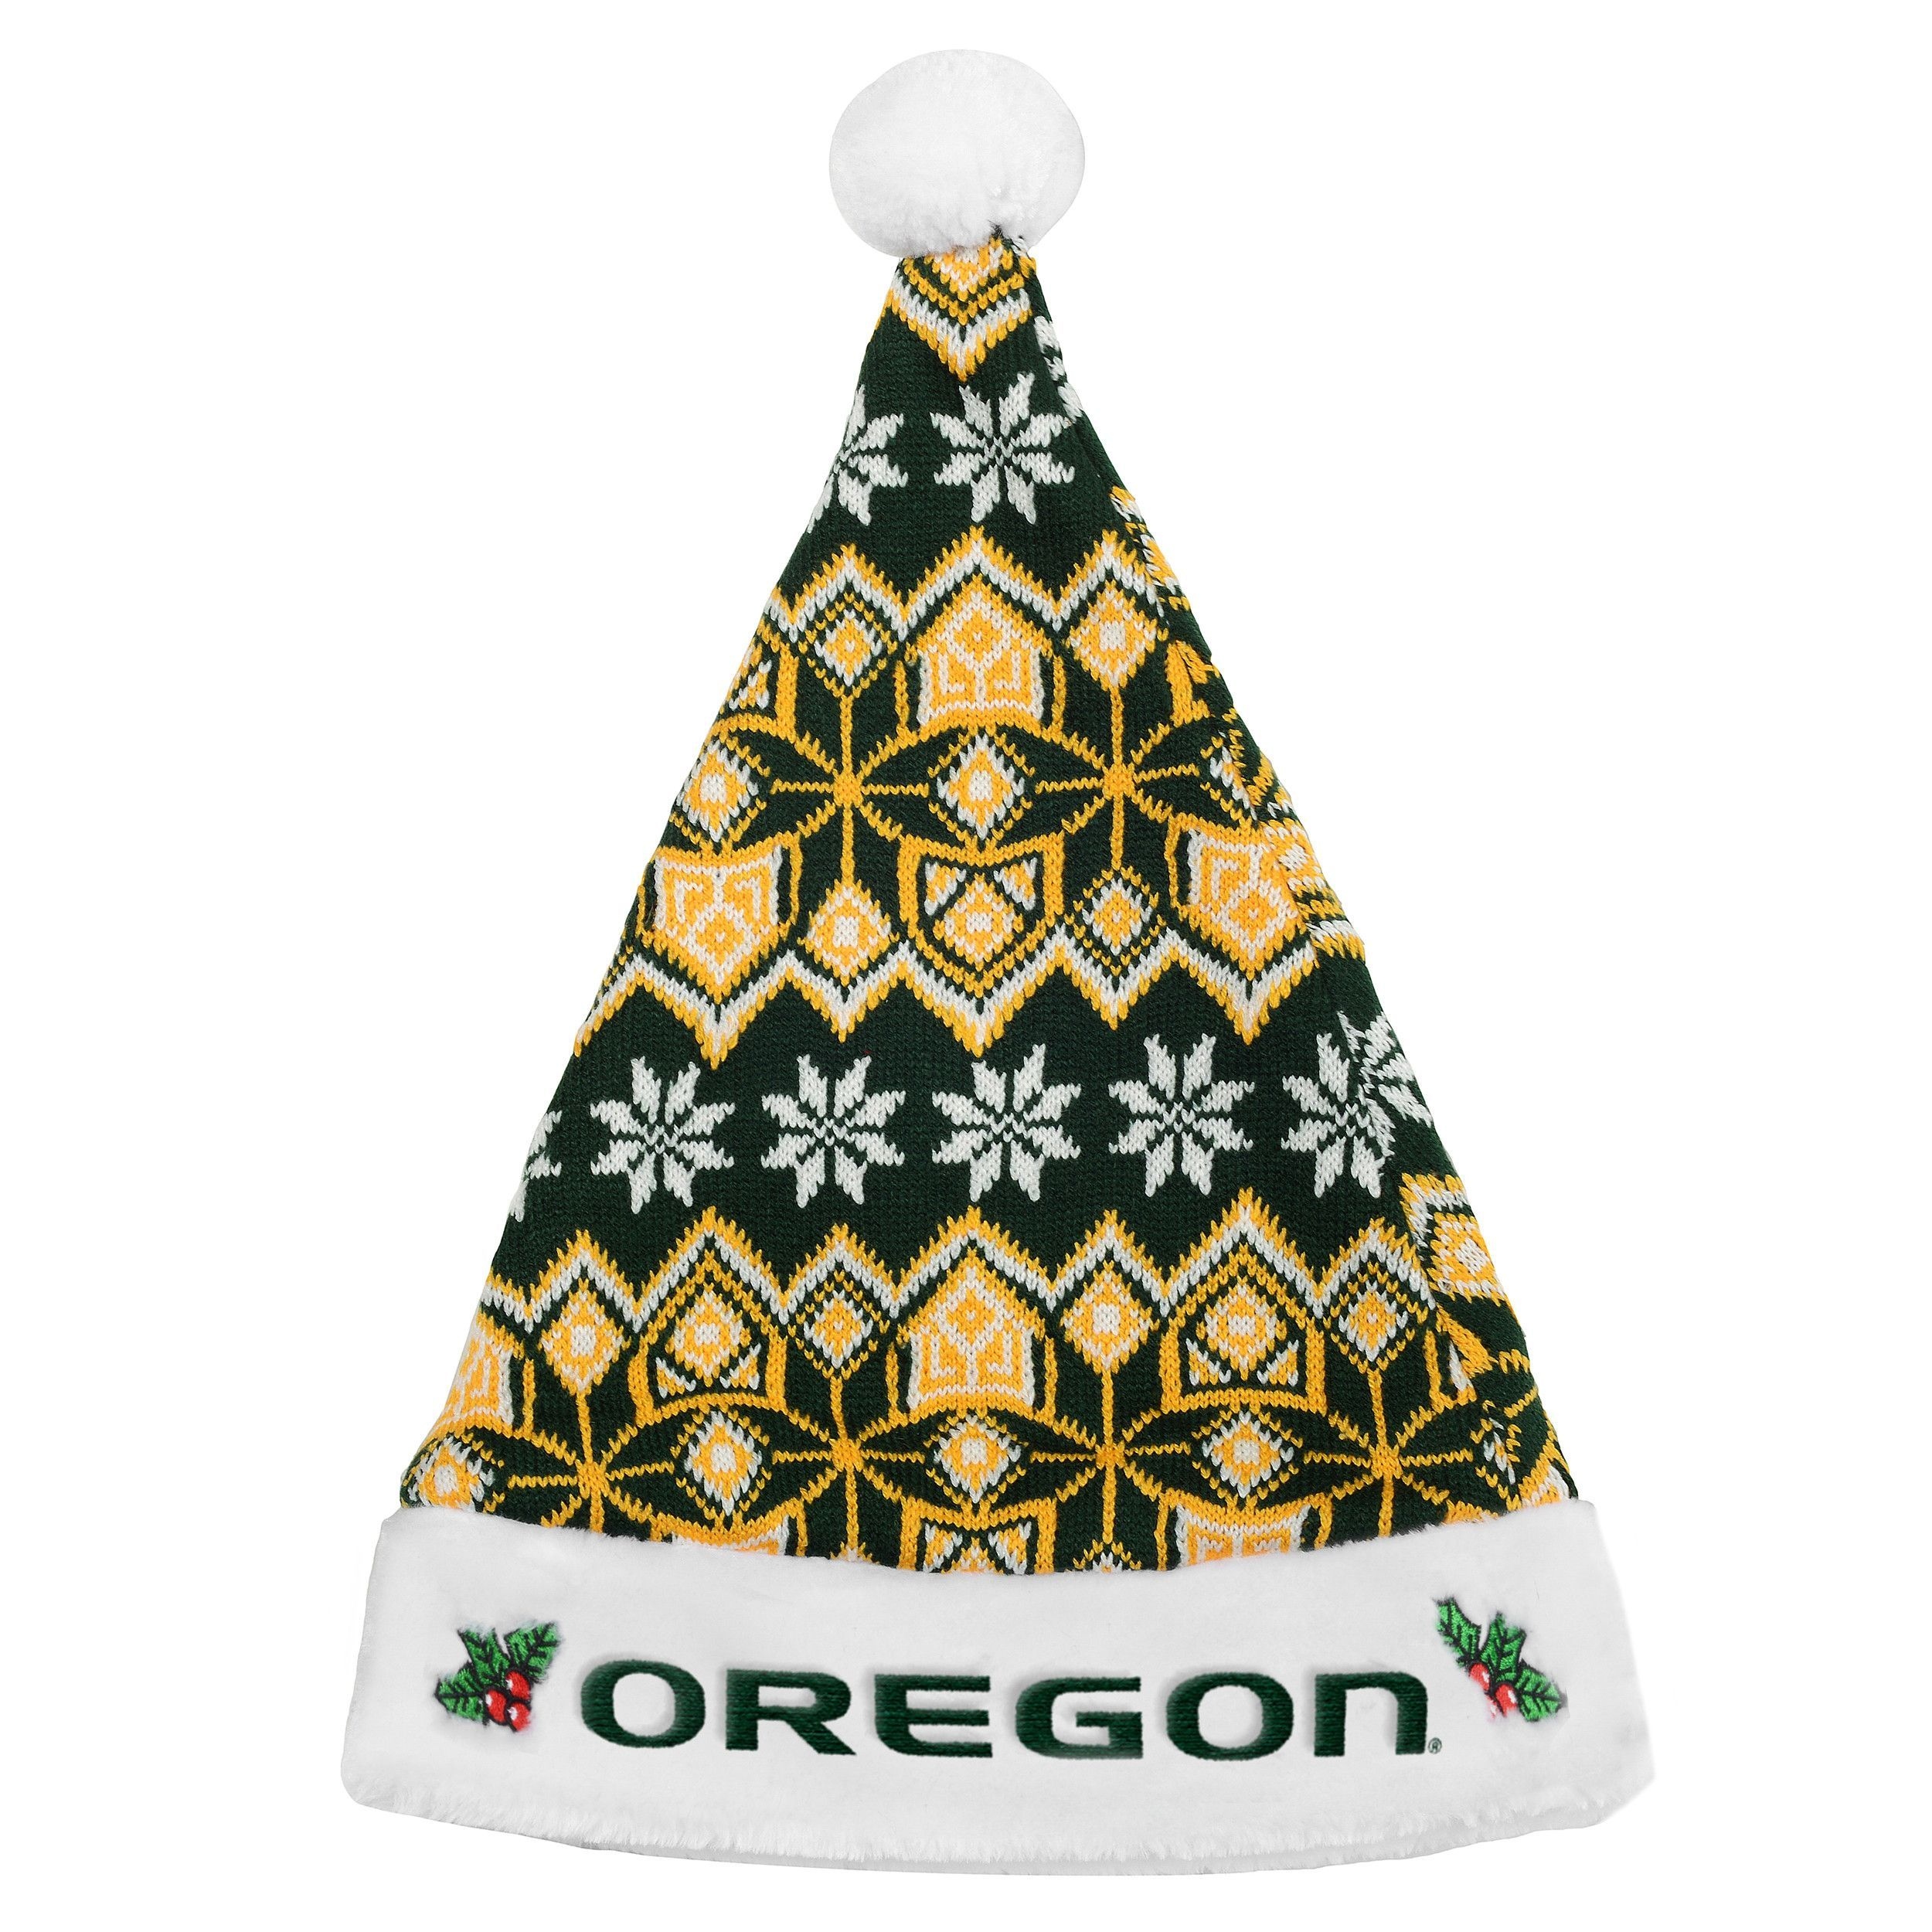 5ce1d17baad7e Oregon Ducks Knit Santa Hat - 2015